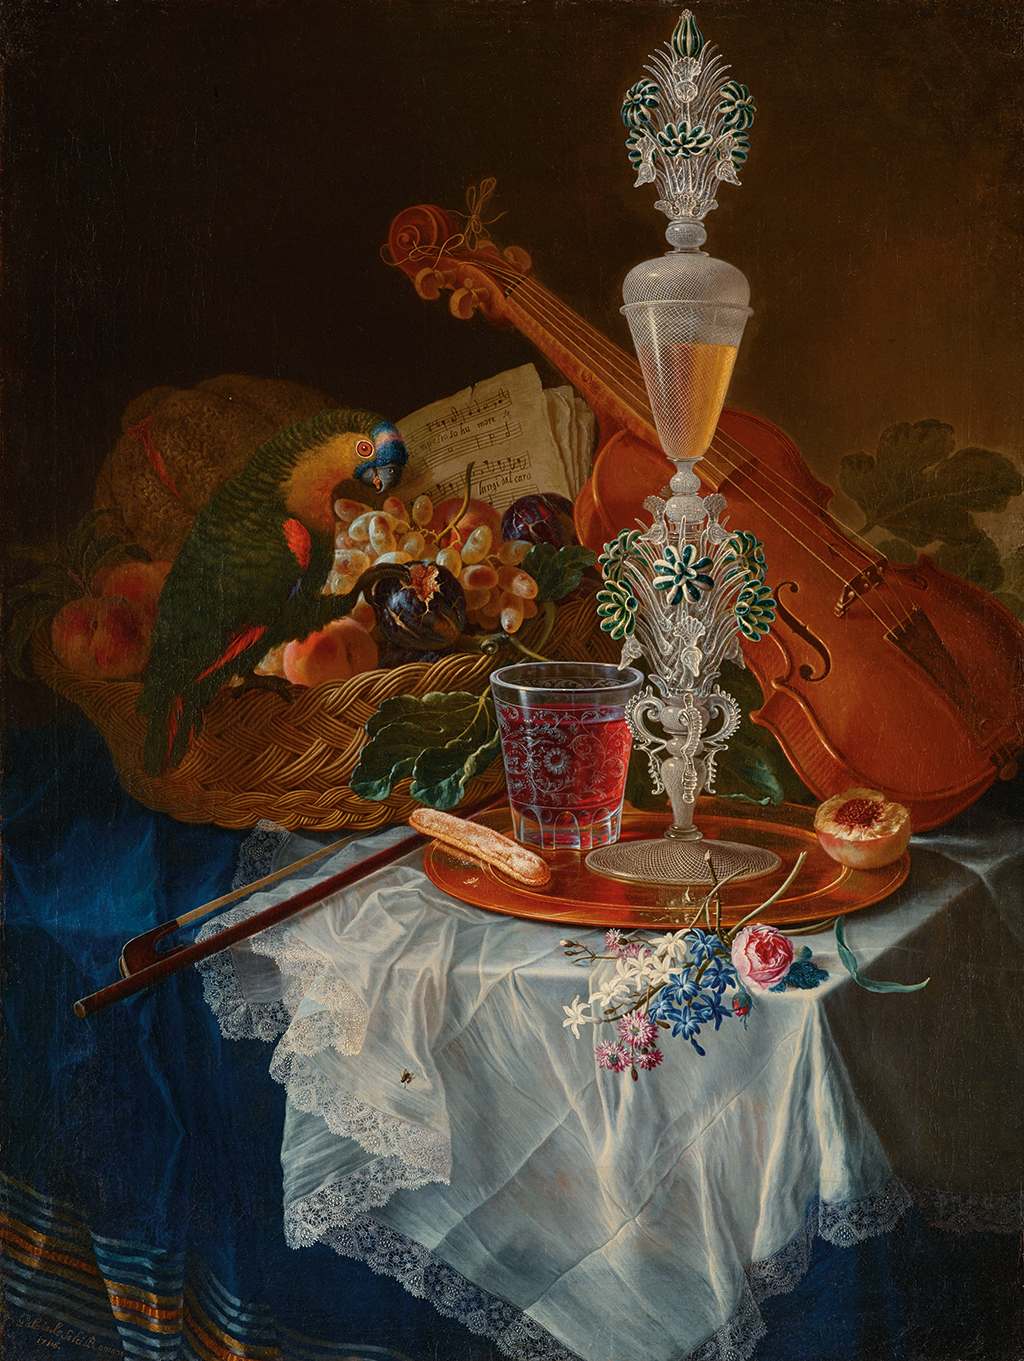 FIG. 30. Still life with crystal goblet, fruit, violin, and parrot. Gabriele Salci (active in the early 18th century), 1710–1720. Palais Liechtenstein, Vaduz. Photo: LIECHTENSTEIN. The Princely Collections, Vaduz-Vienna.